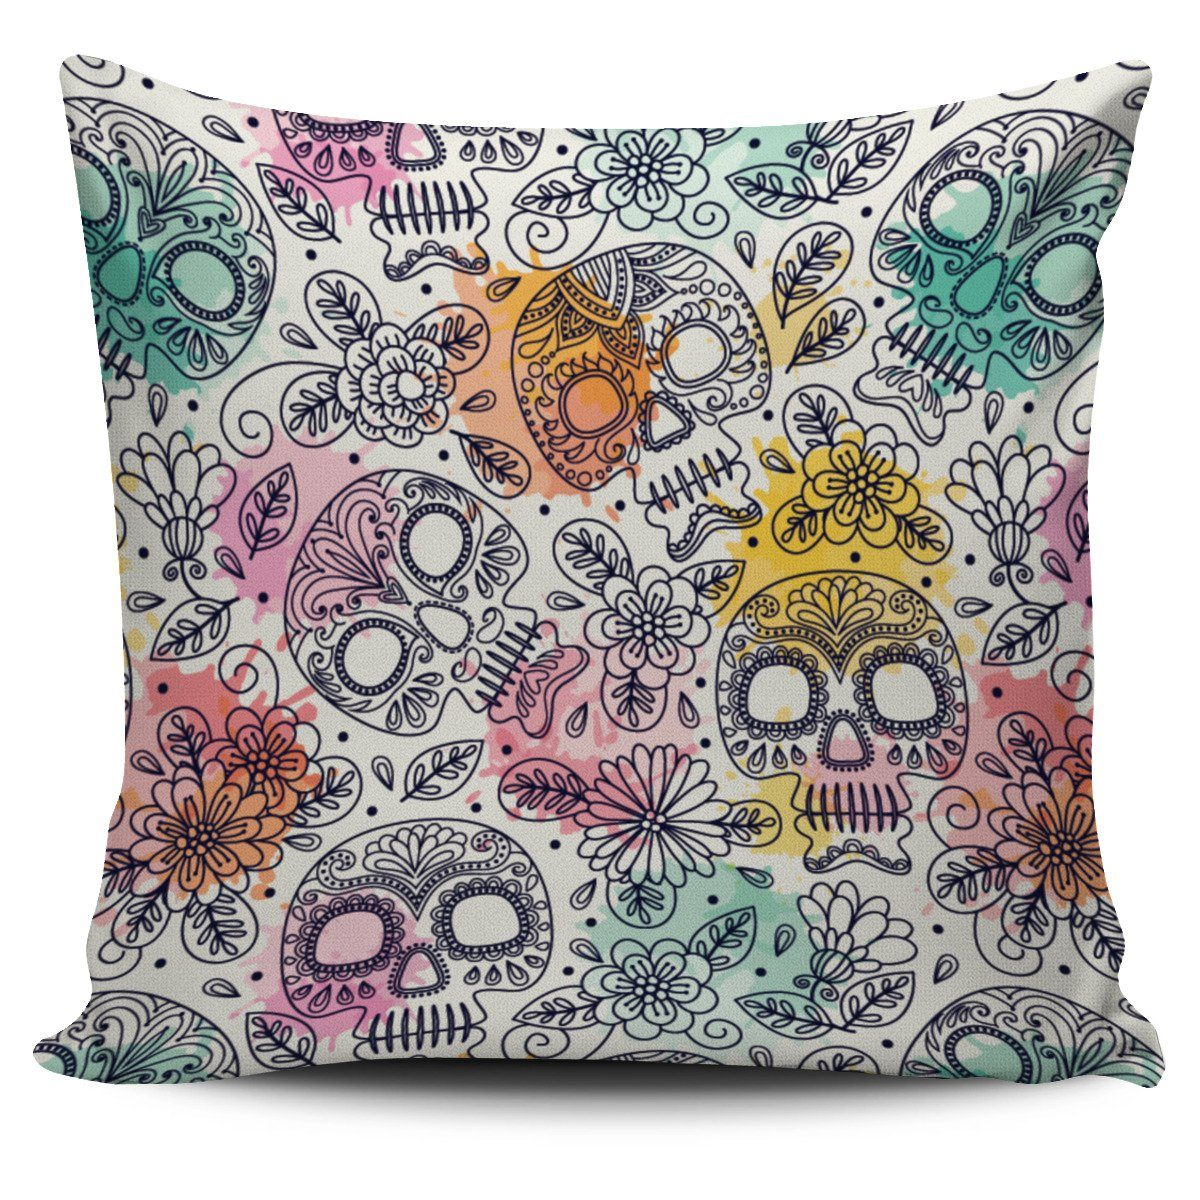 Watercolor Sugar Skulls Pillow Cover